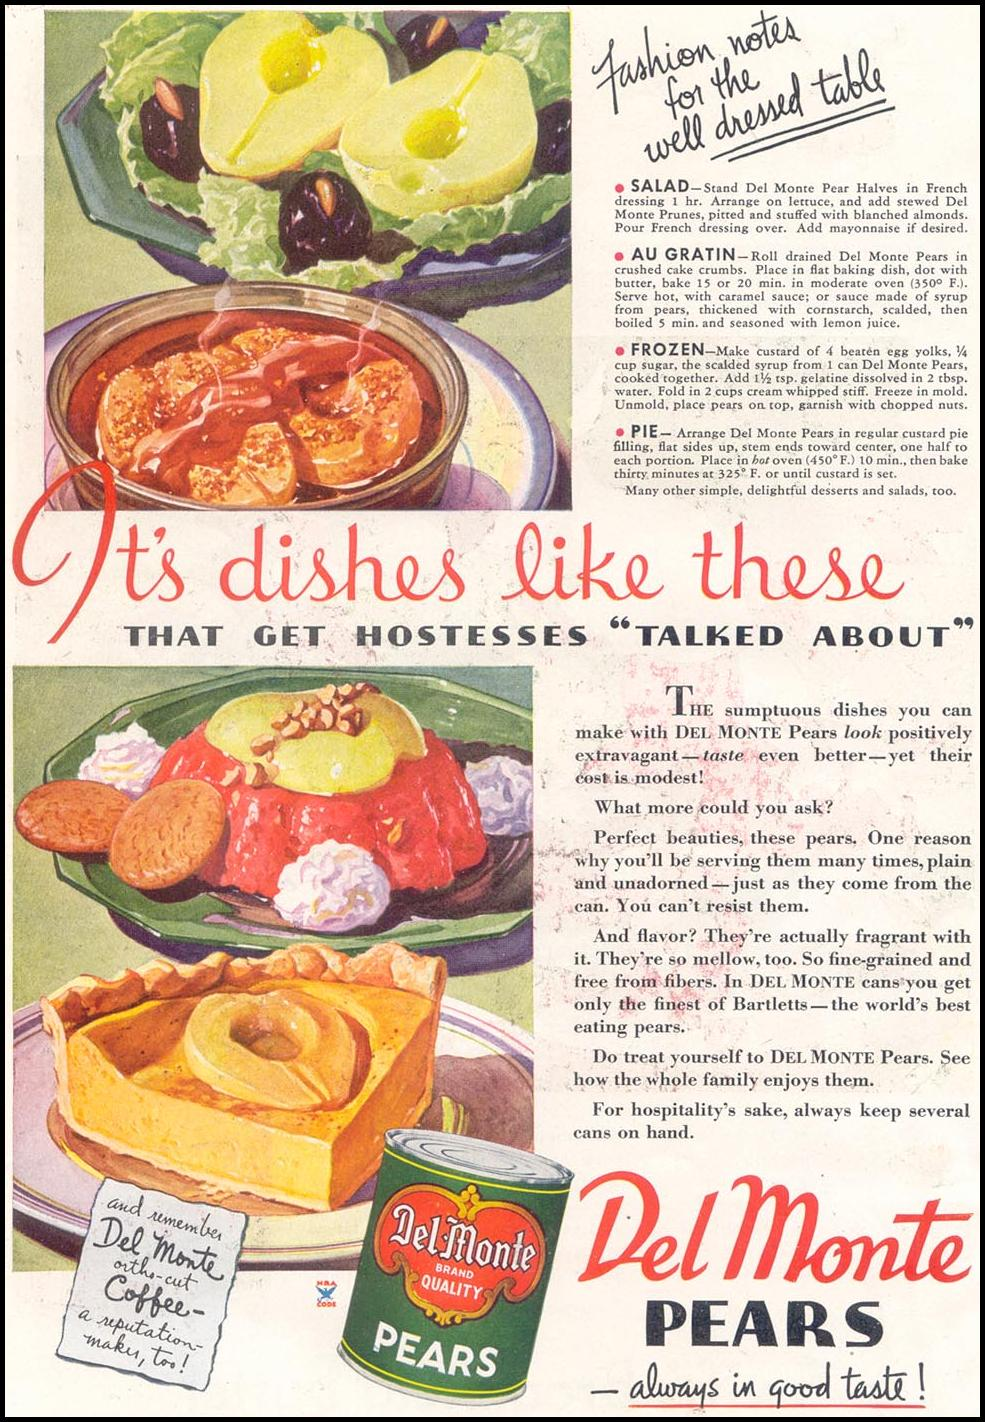 DEL MONTE PEARS